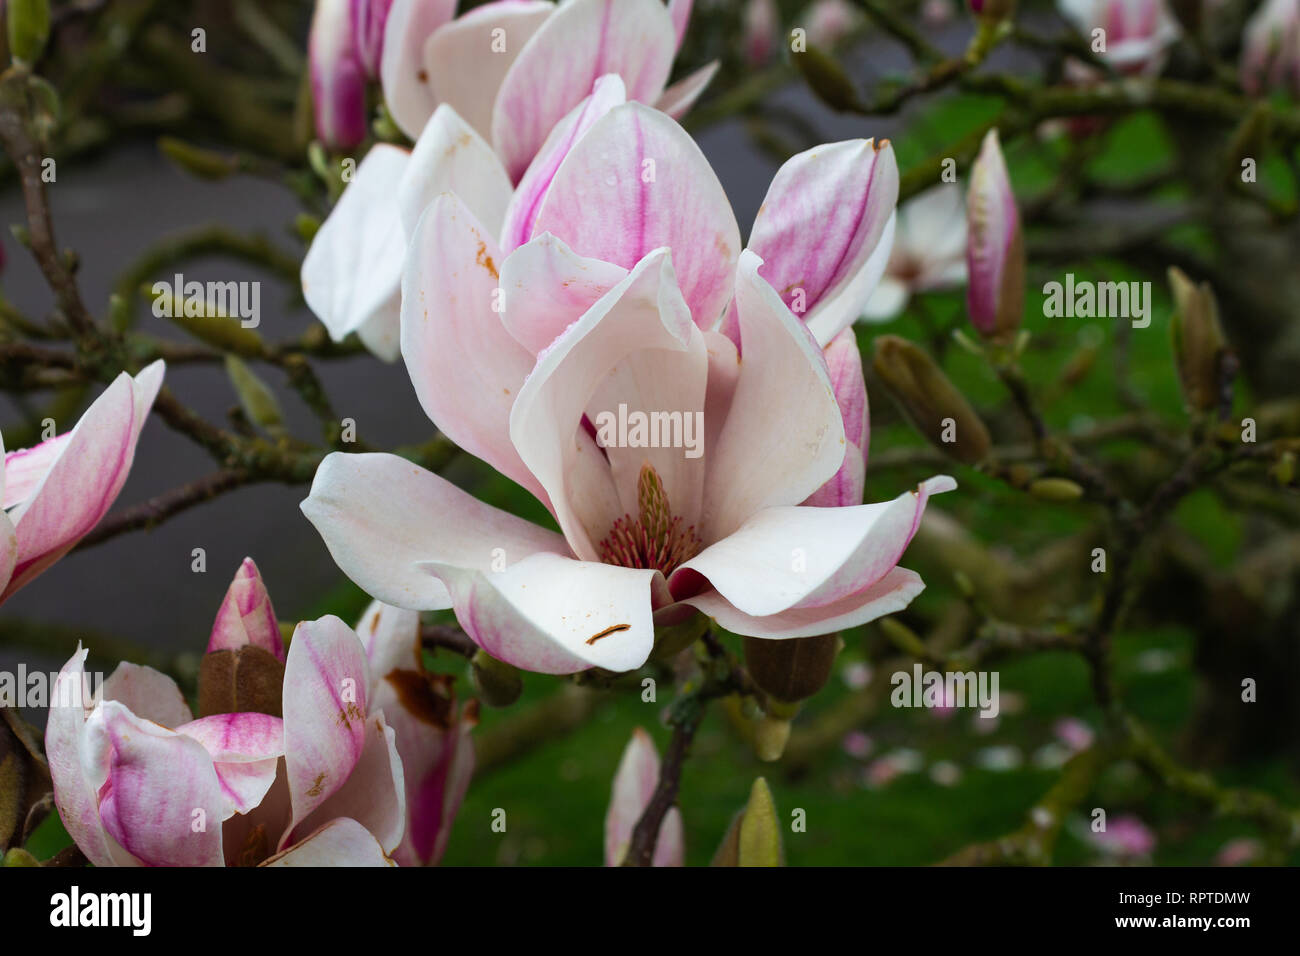 magnolia-tree-in-full-spring-flower-RPTDMW.jpg